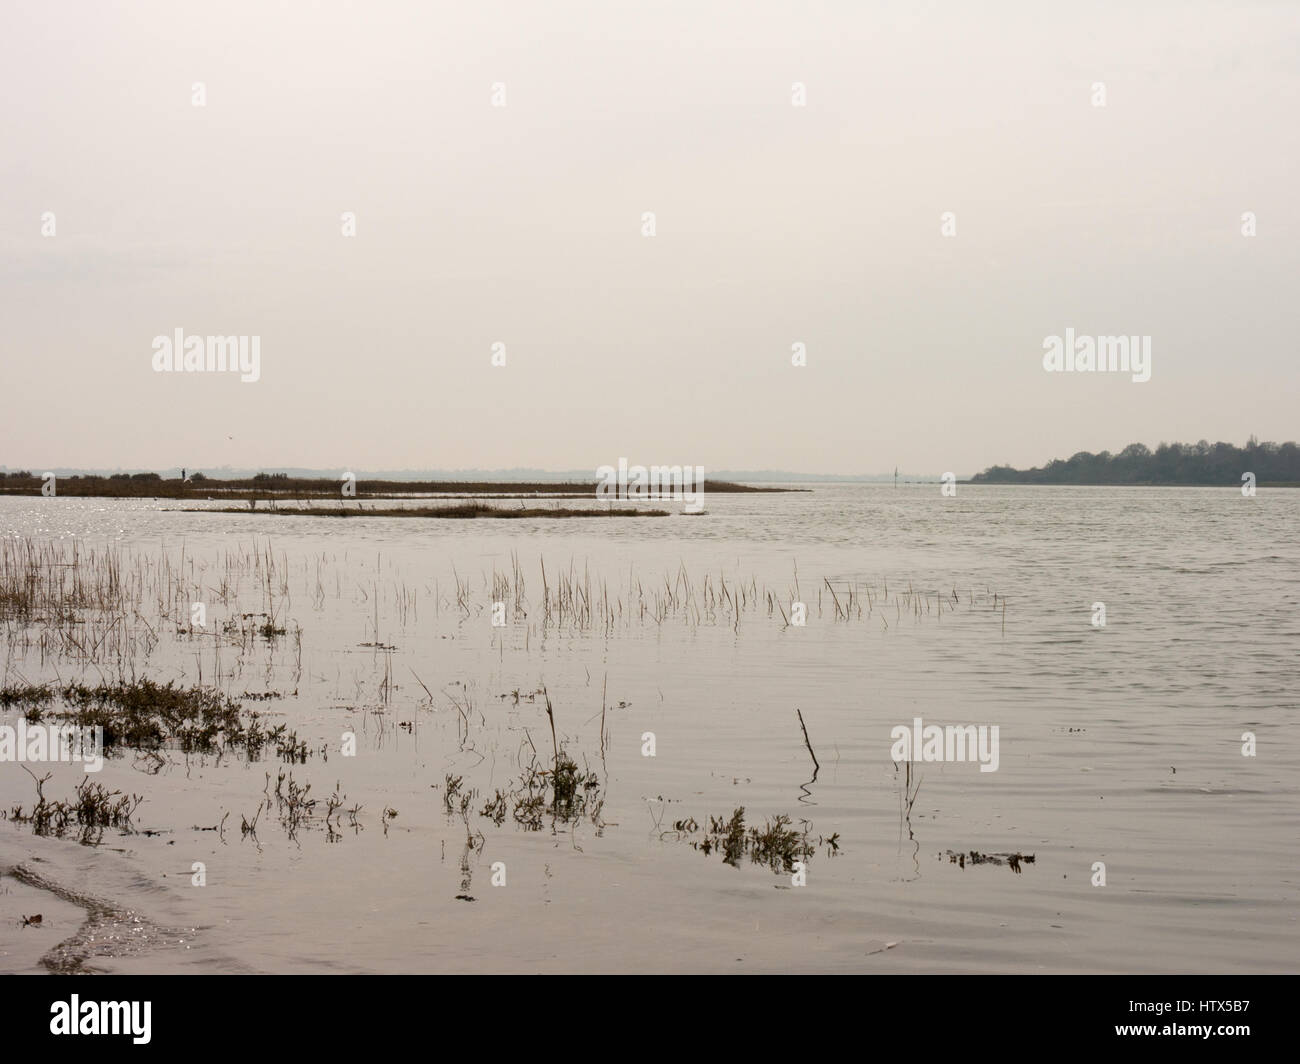 The lovely, crips waters of the Colne on a cold day. - Stock Image